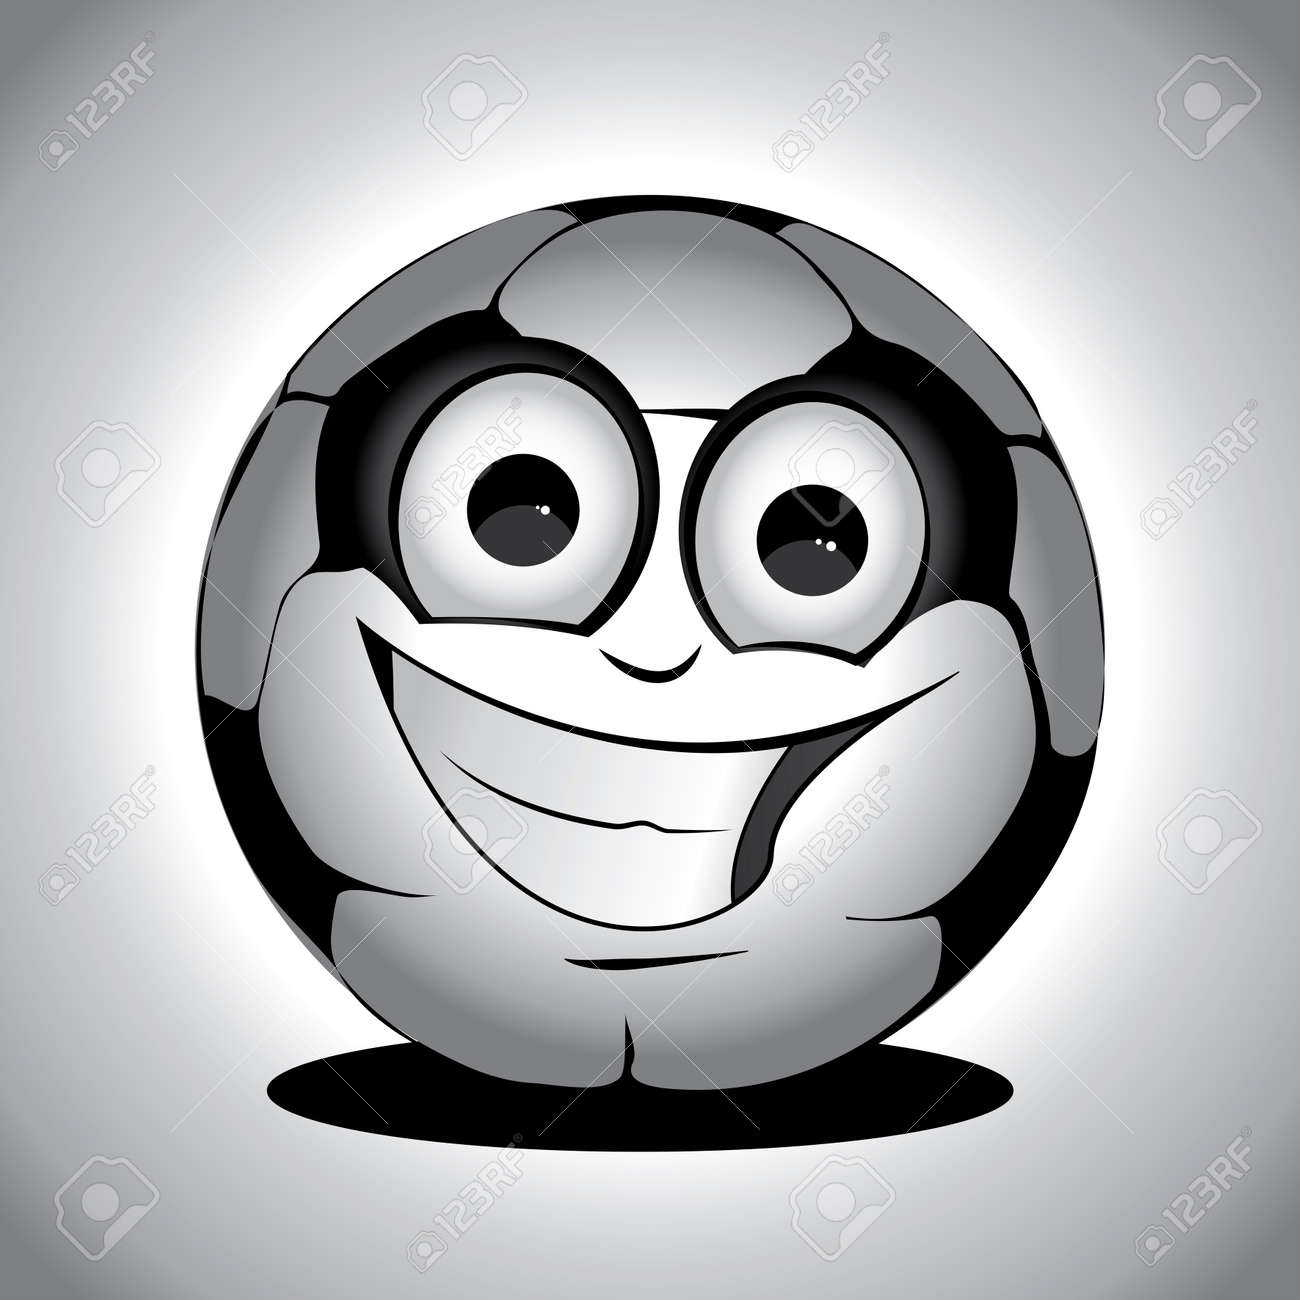 Gray cute soccer ball on the floor drawing Stock Vector - 9357620